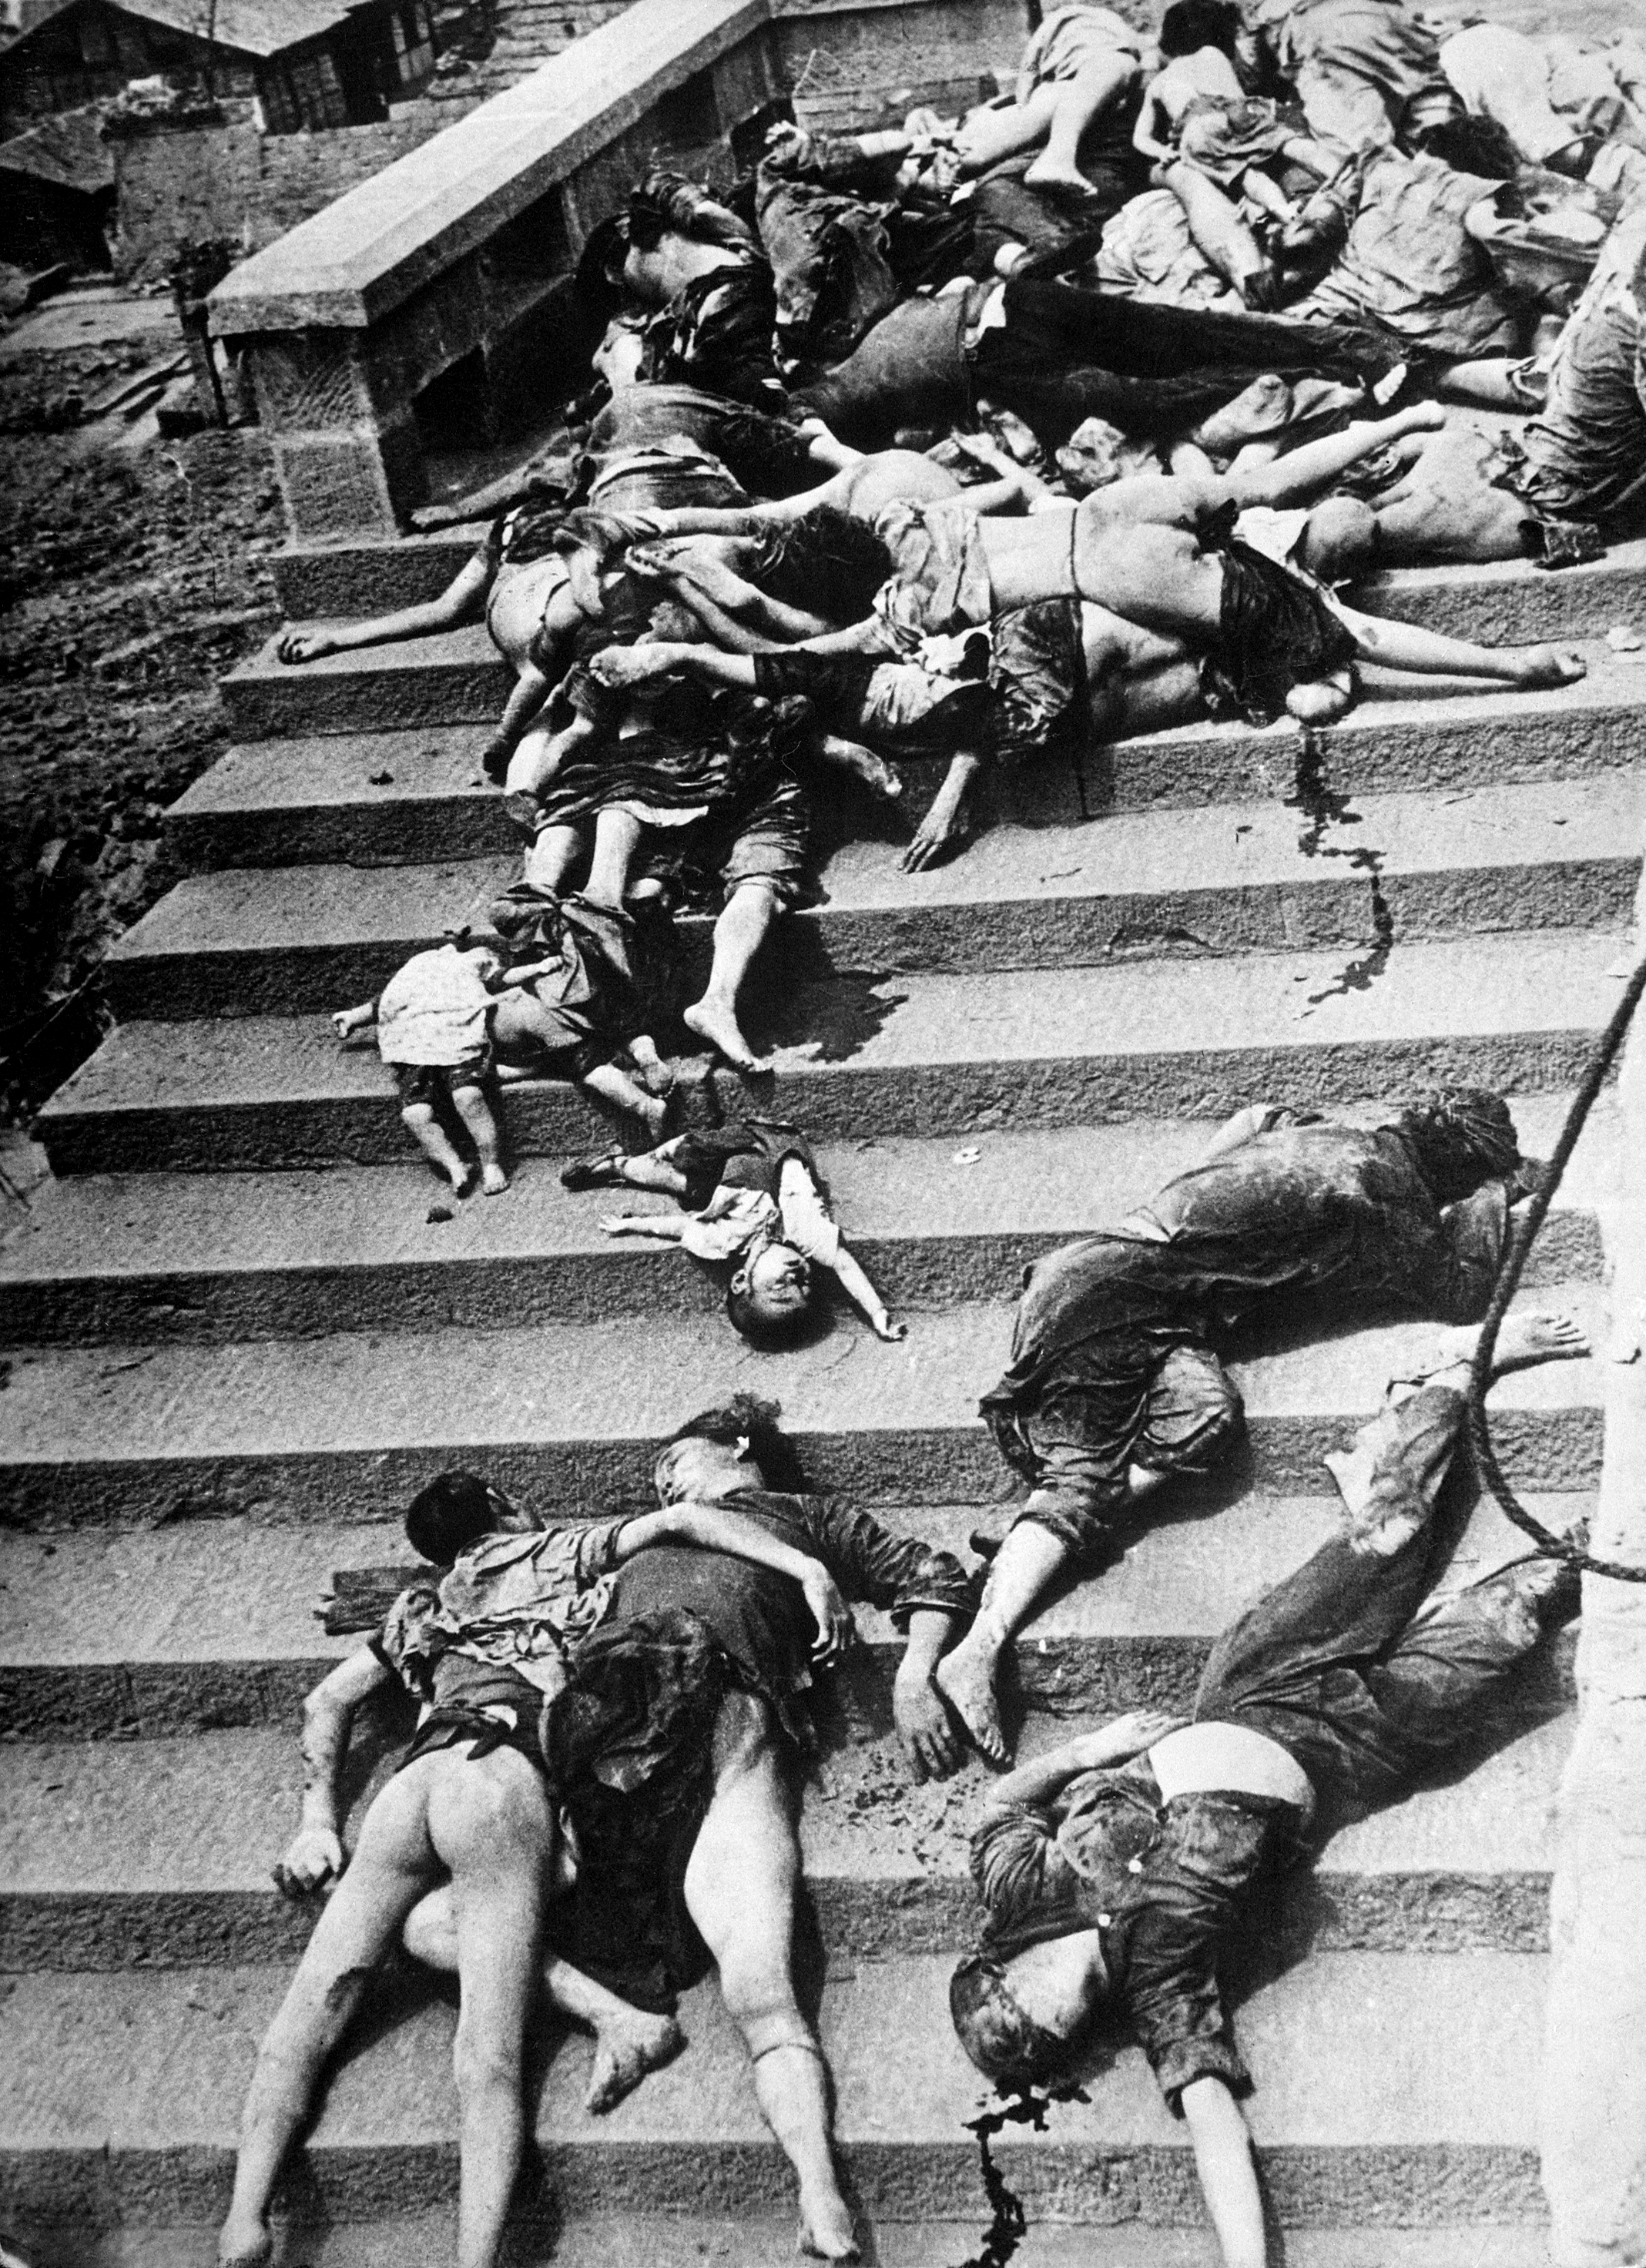 ファイル:Casualties of a mass panic - Chungking, China.jpg